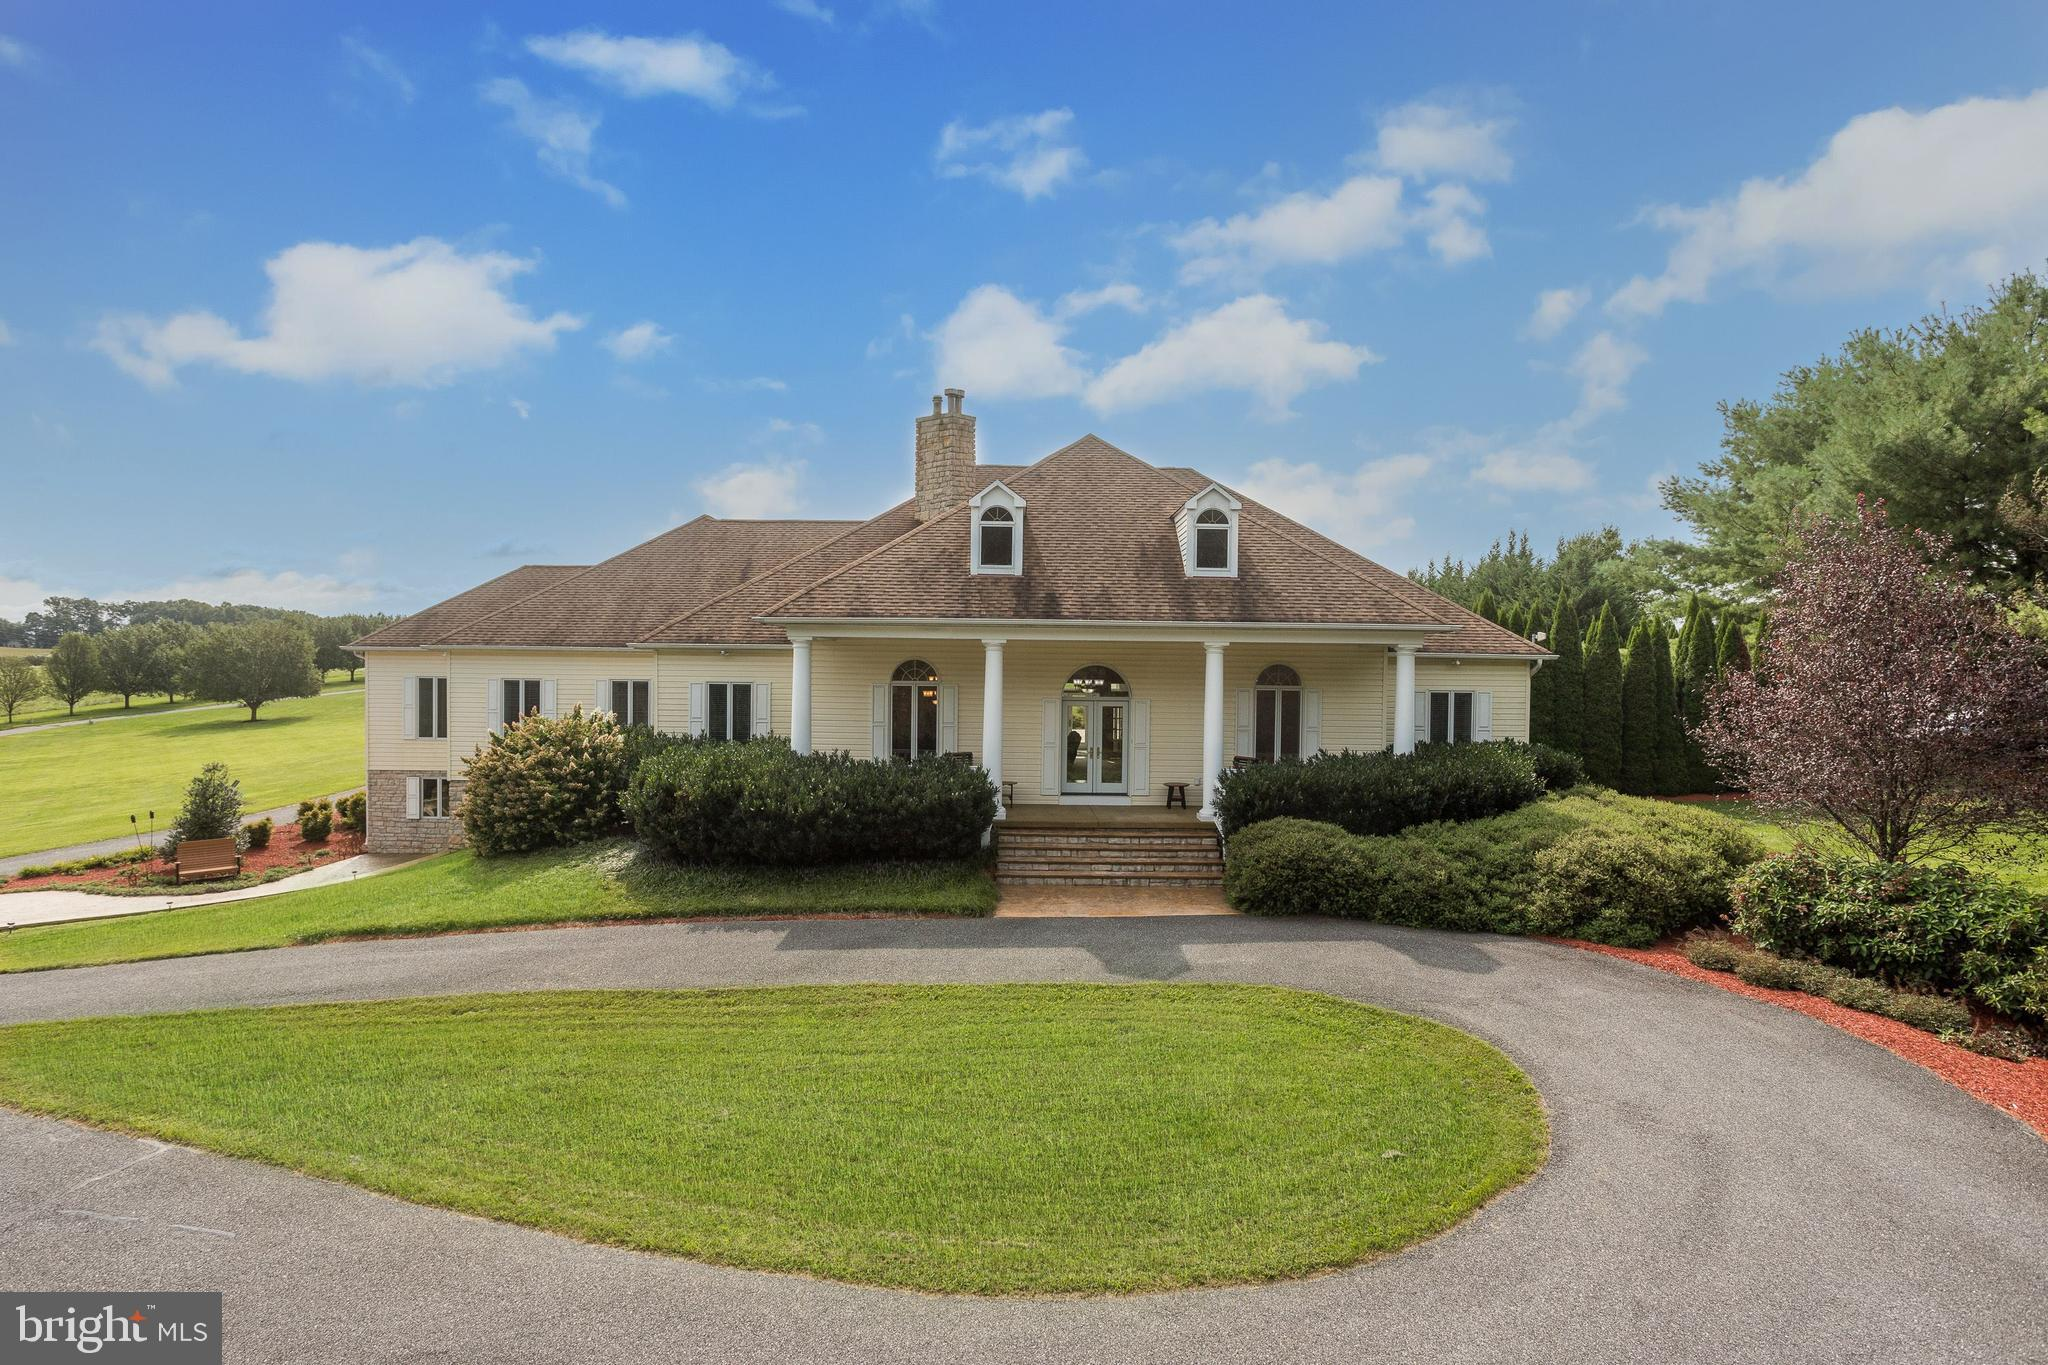 Stunning Custom Built Rancher Boasting Sundrenched Lofty Windows, Arched Doorways, Expansive In-Law